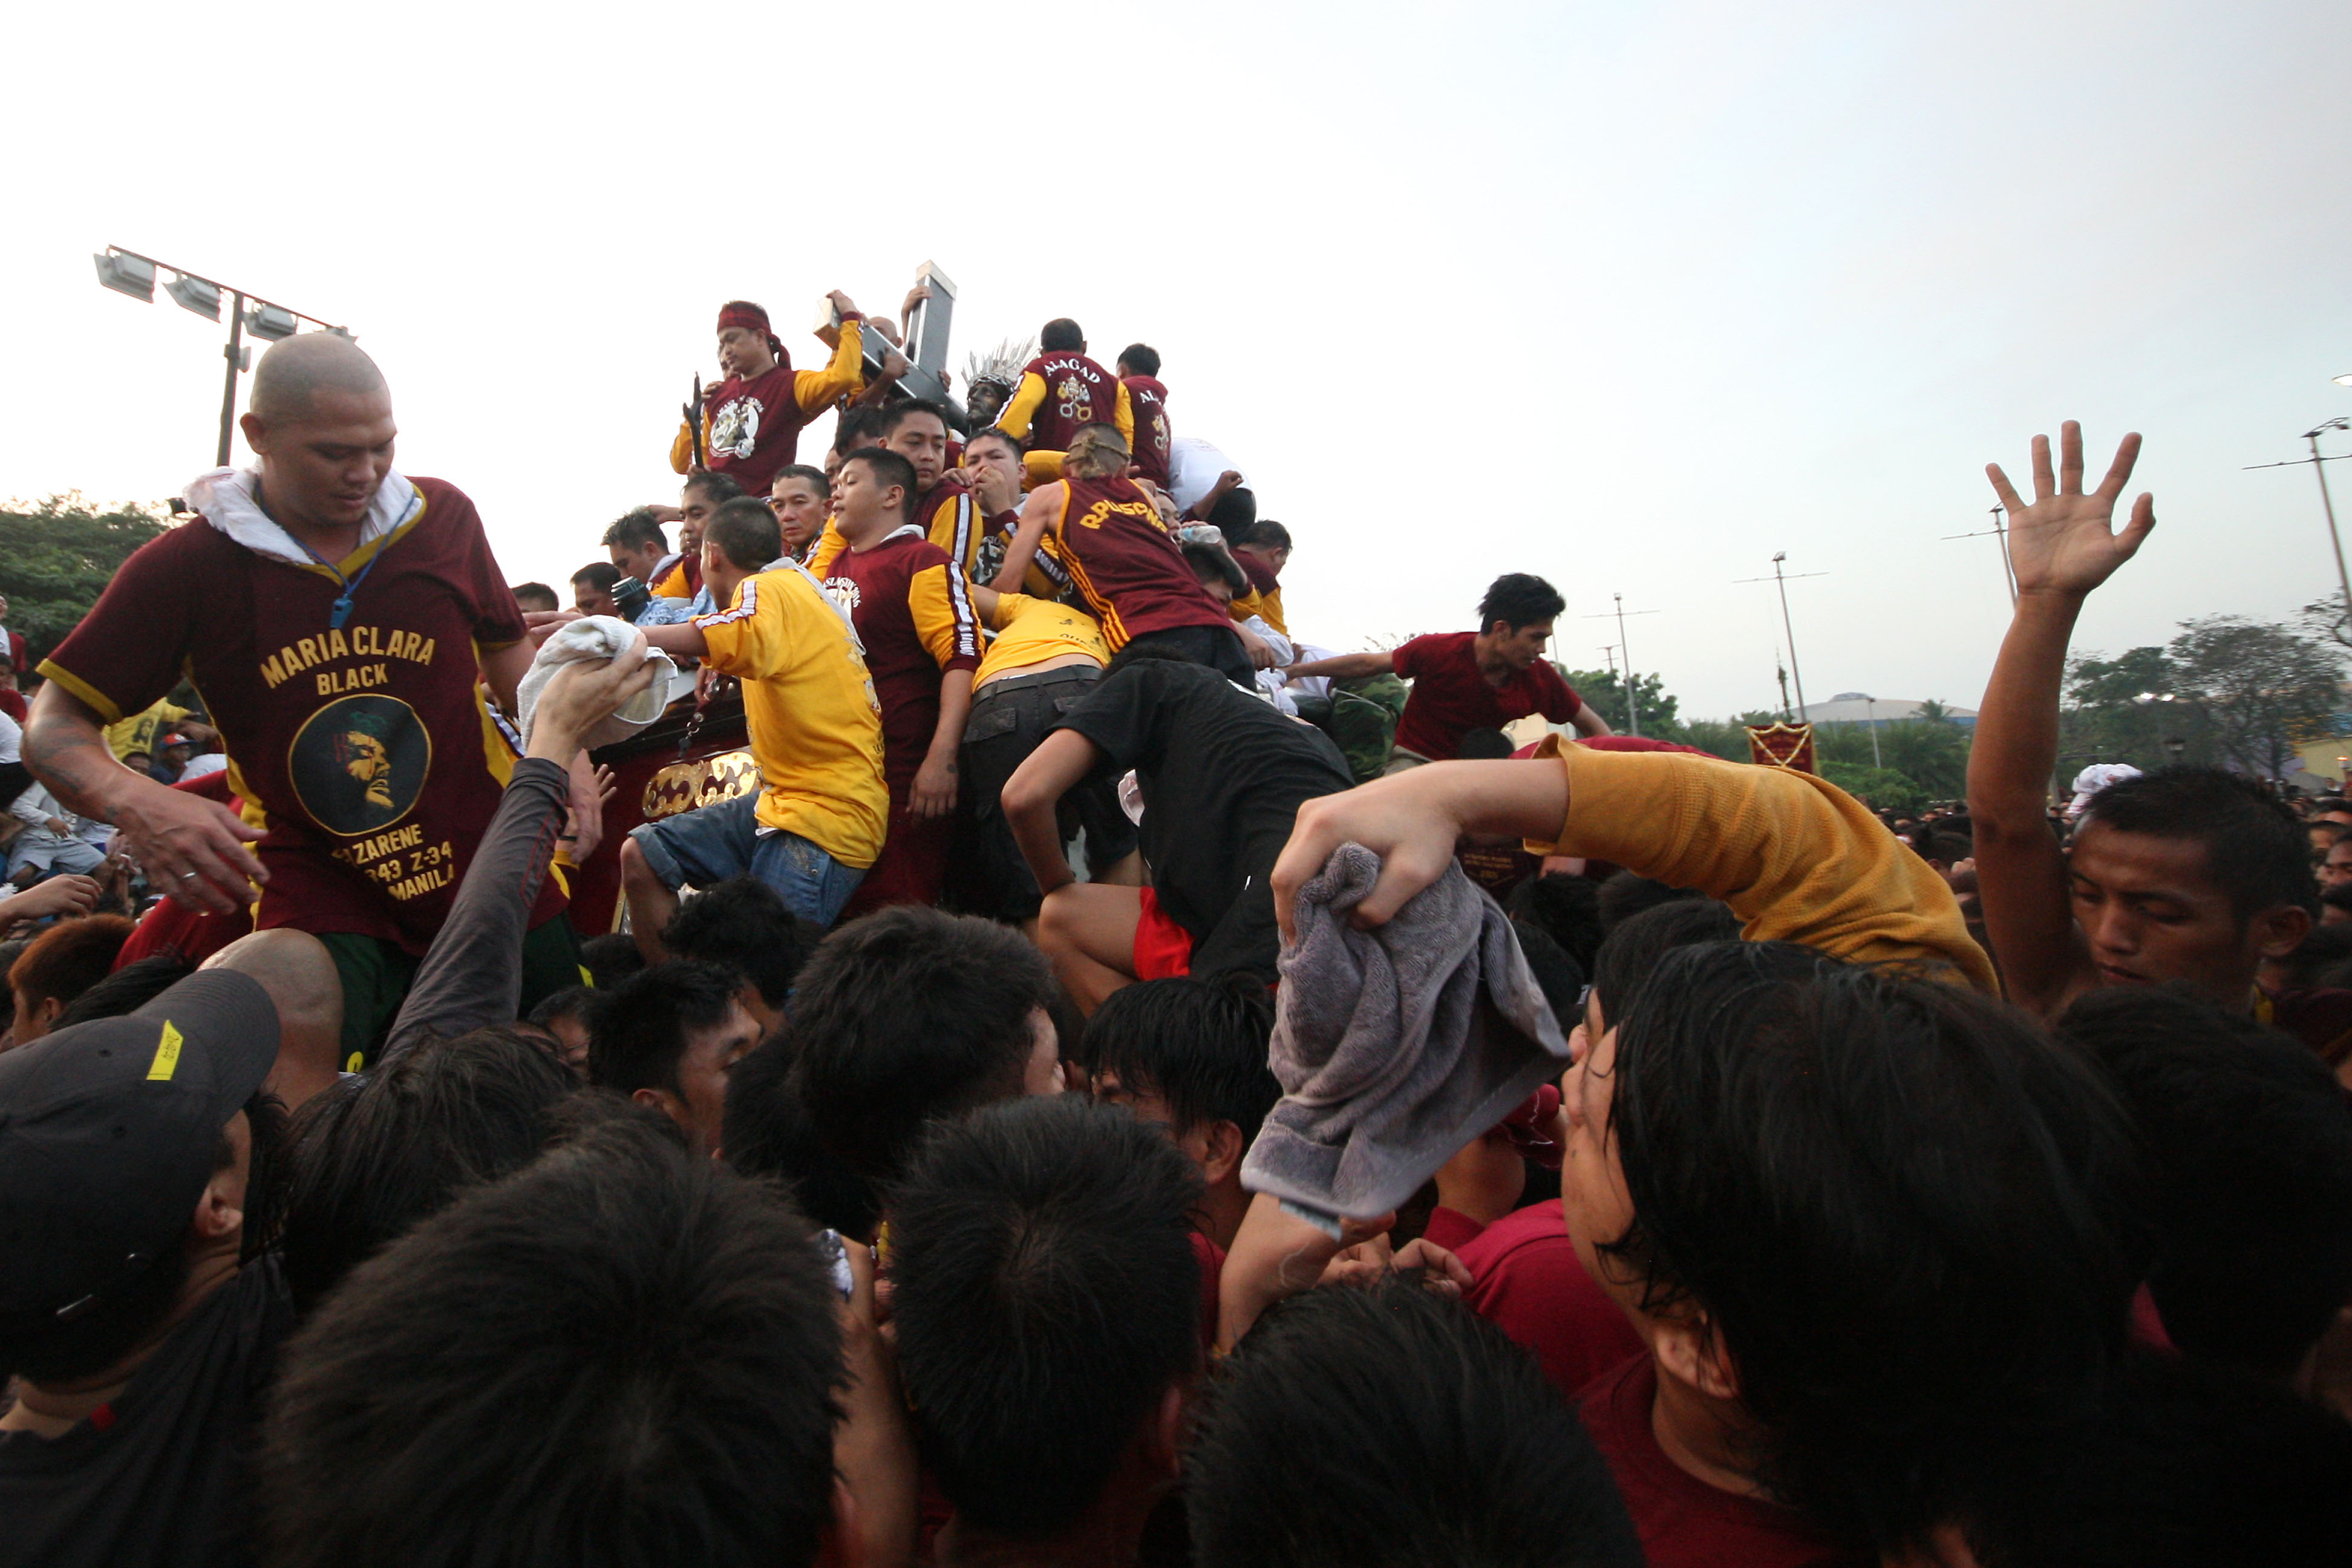 MIRACLE. Some devotees hope for miracles or thank the Black Nazarene for blessings received. Photo by Ben Nabong/Rappler